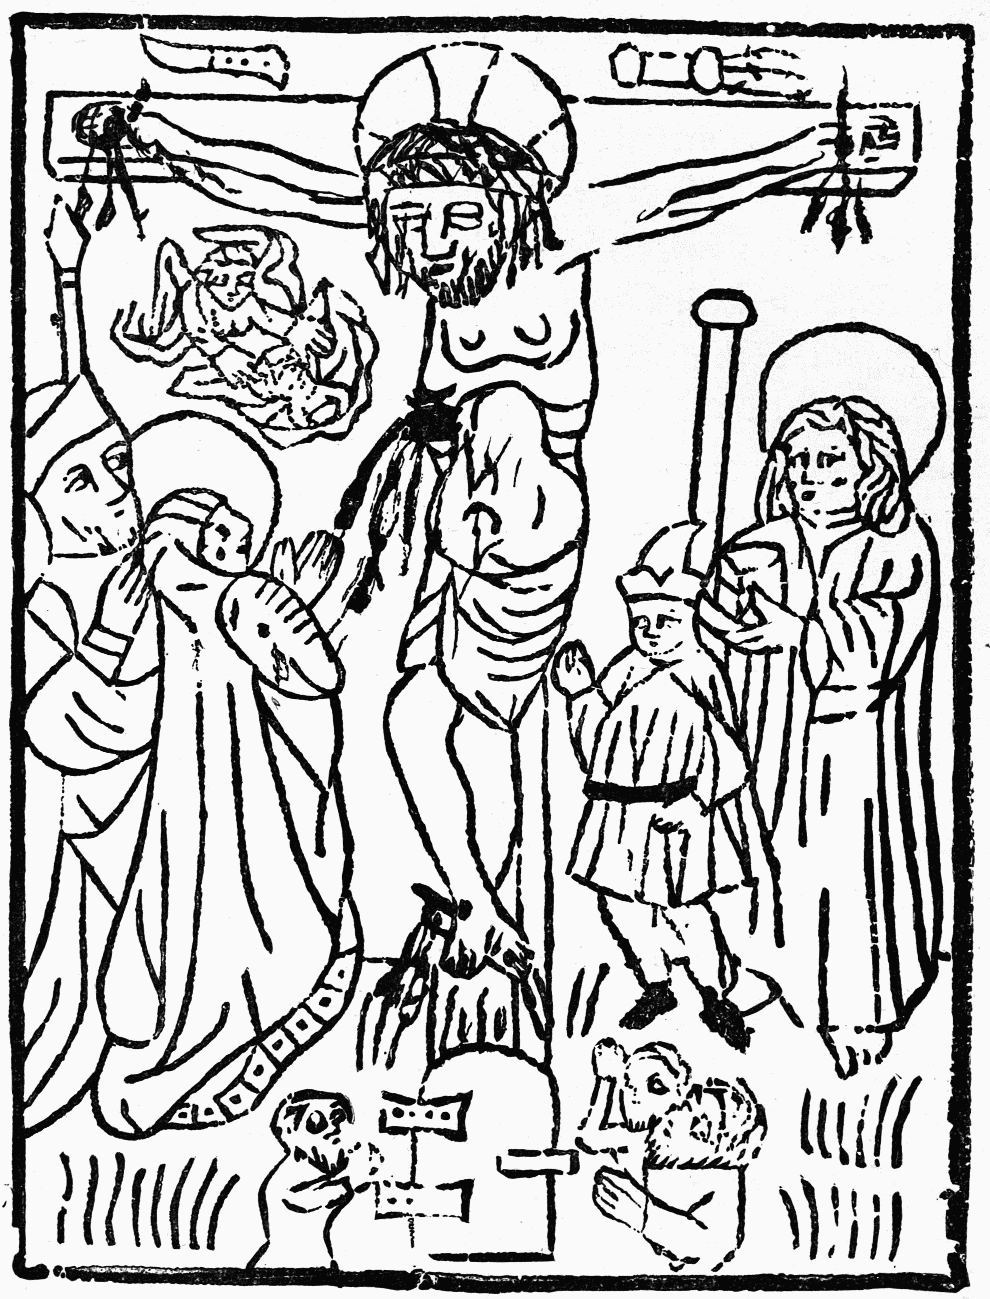 The project gutenberg ebook of a history of wood engraving by fig 3the crucifixion from the manuscript book of devotion fandeluxe Choice Image